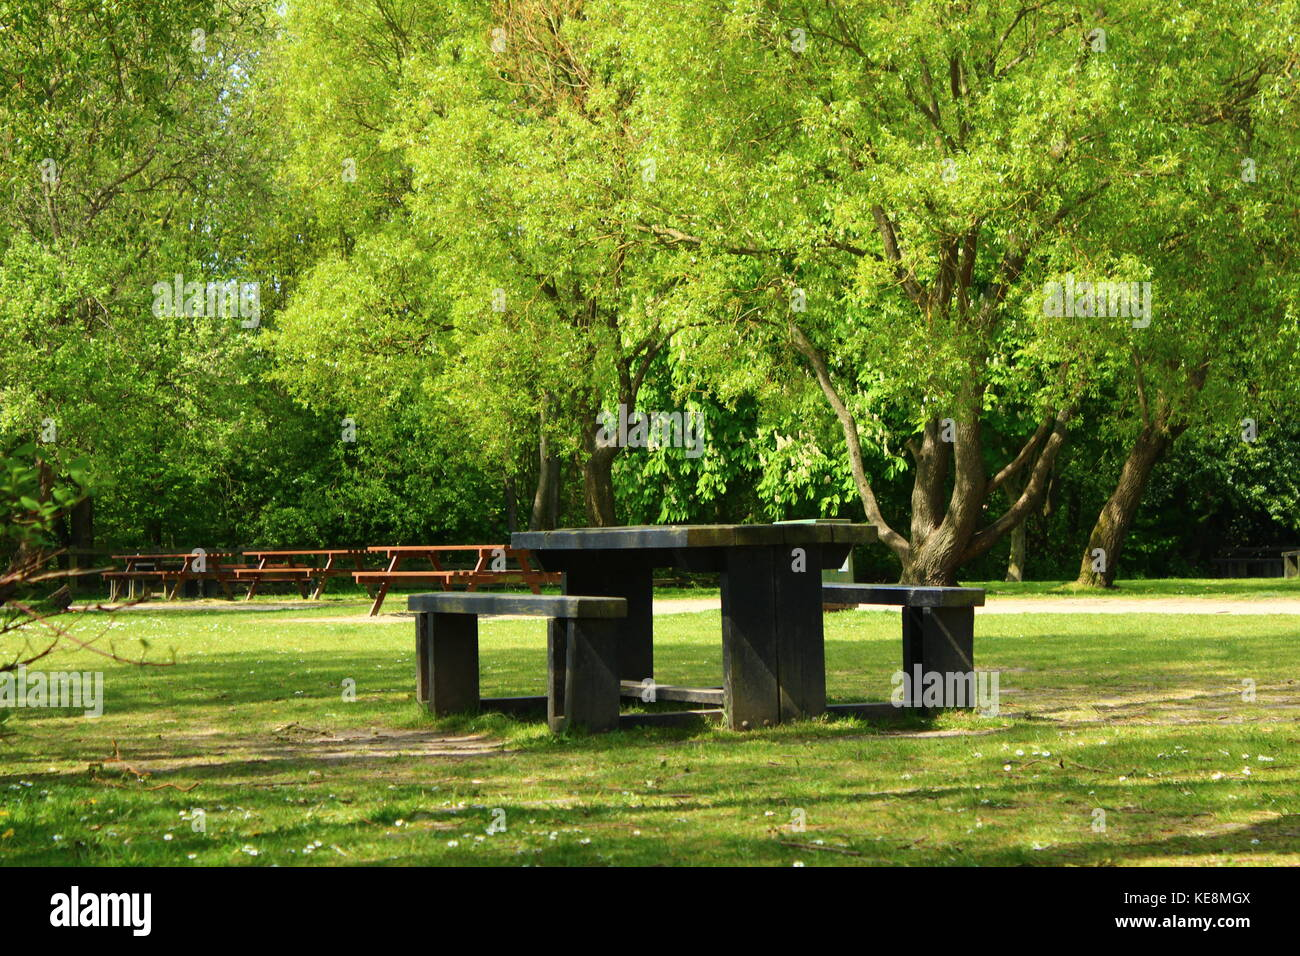 Picnic table with seats in a park surrounded by trees (Penington Flash, Leigh, UK) Stock Photo